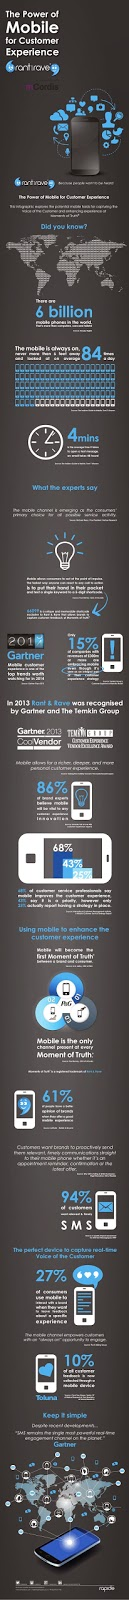 http://www.slideshare.net/fullscreen/rapideuk/mobile-customerexperienceinfographic/1